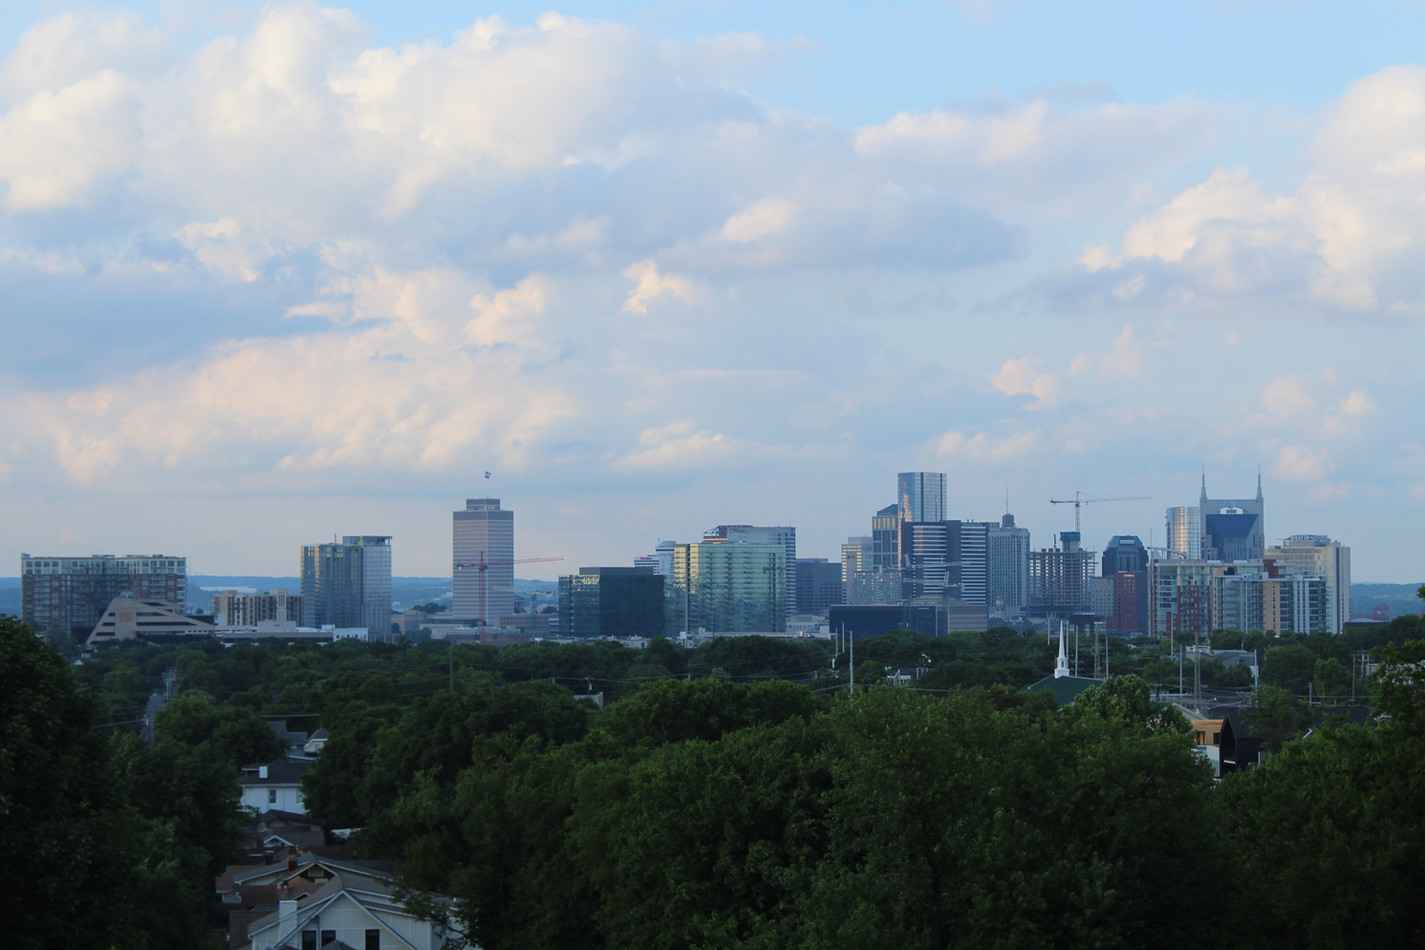 Nashville Skyline 2019 from Belmont